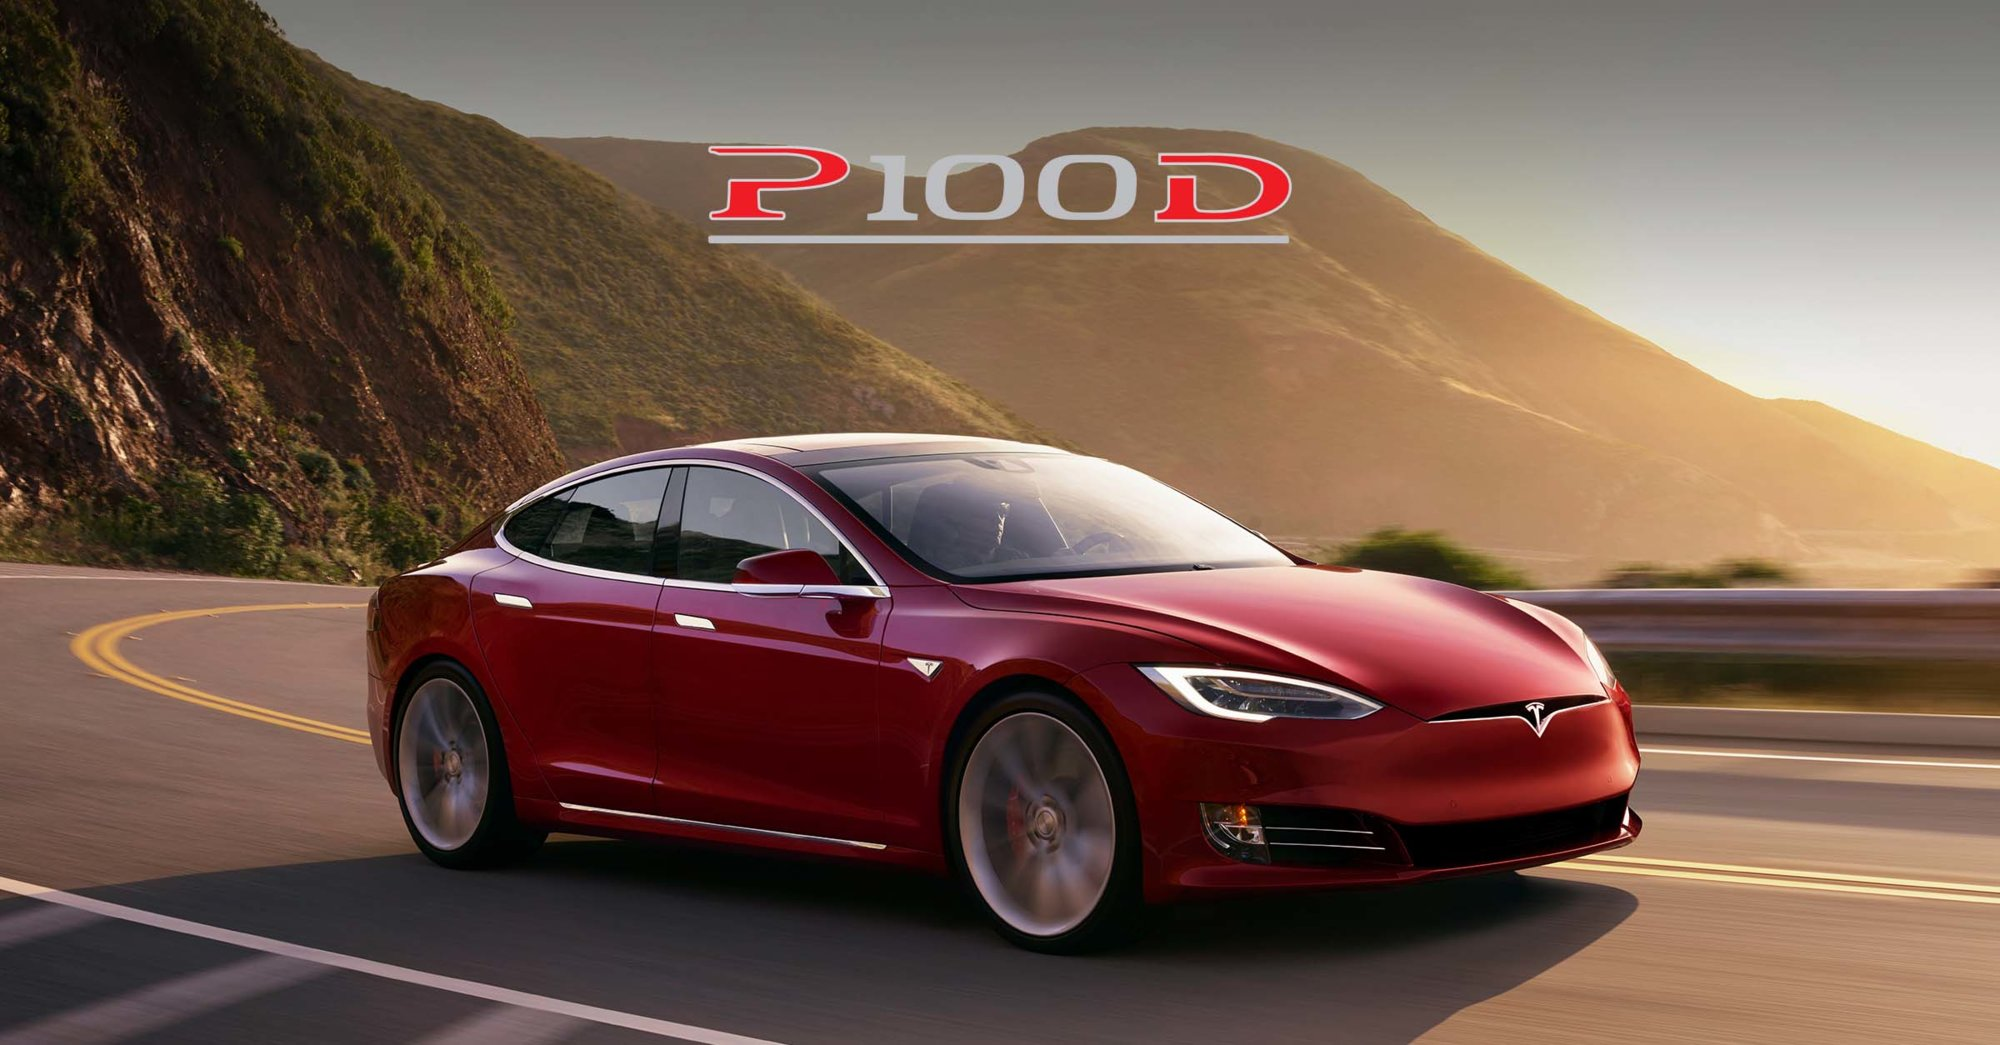 p100d-announcement.jpg